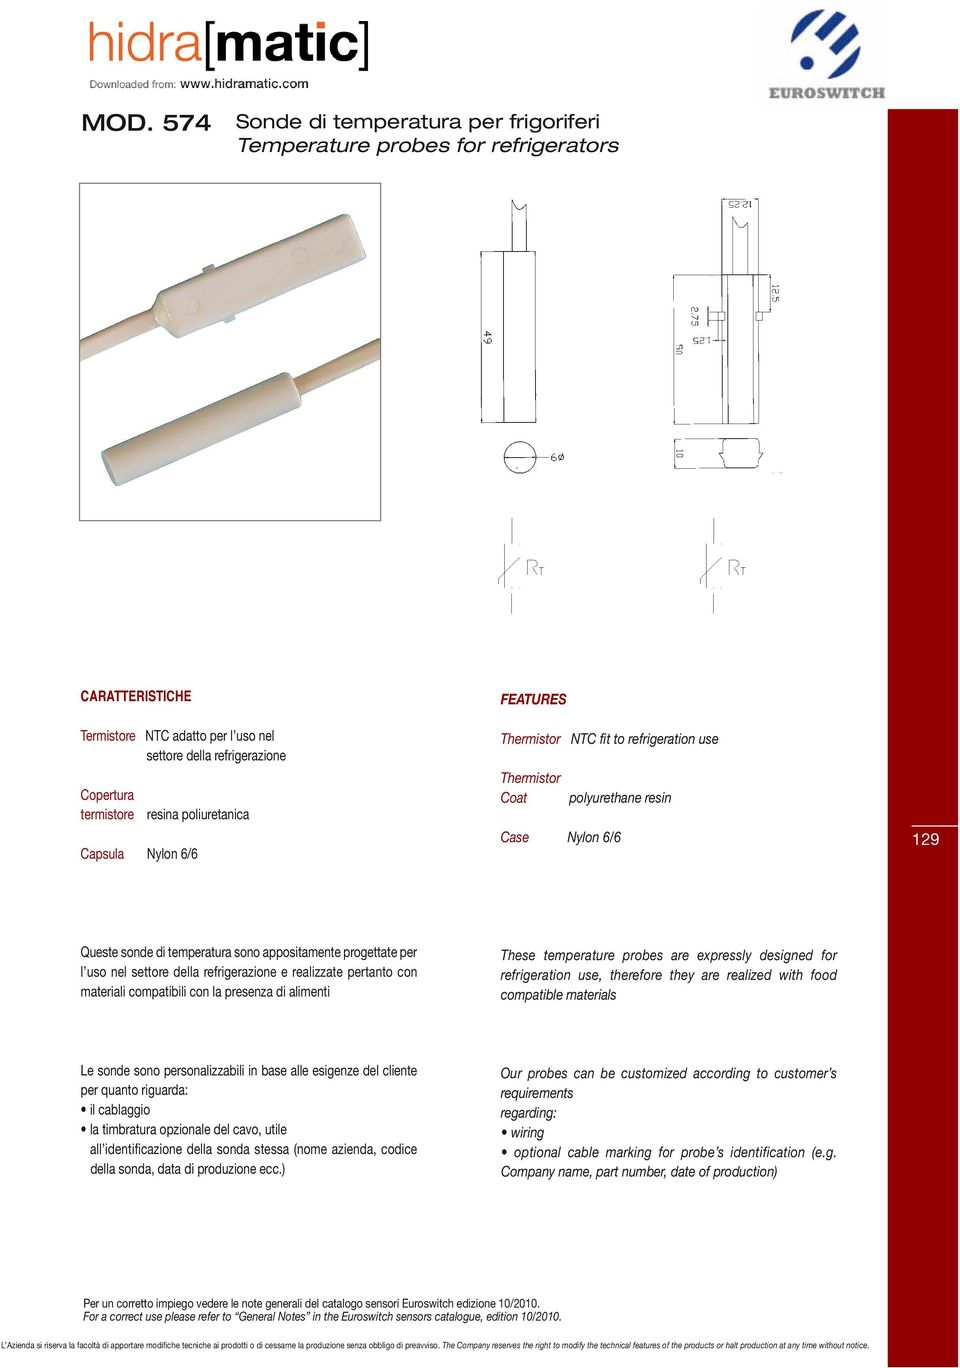 refrigerazione e realizzate pertanto con materiali compatibili con la presenza di alimenti These temperature probes are expressly designed for refrigeration use, therefore they are realized with food